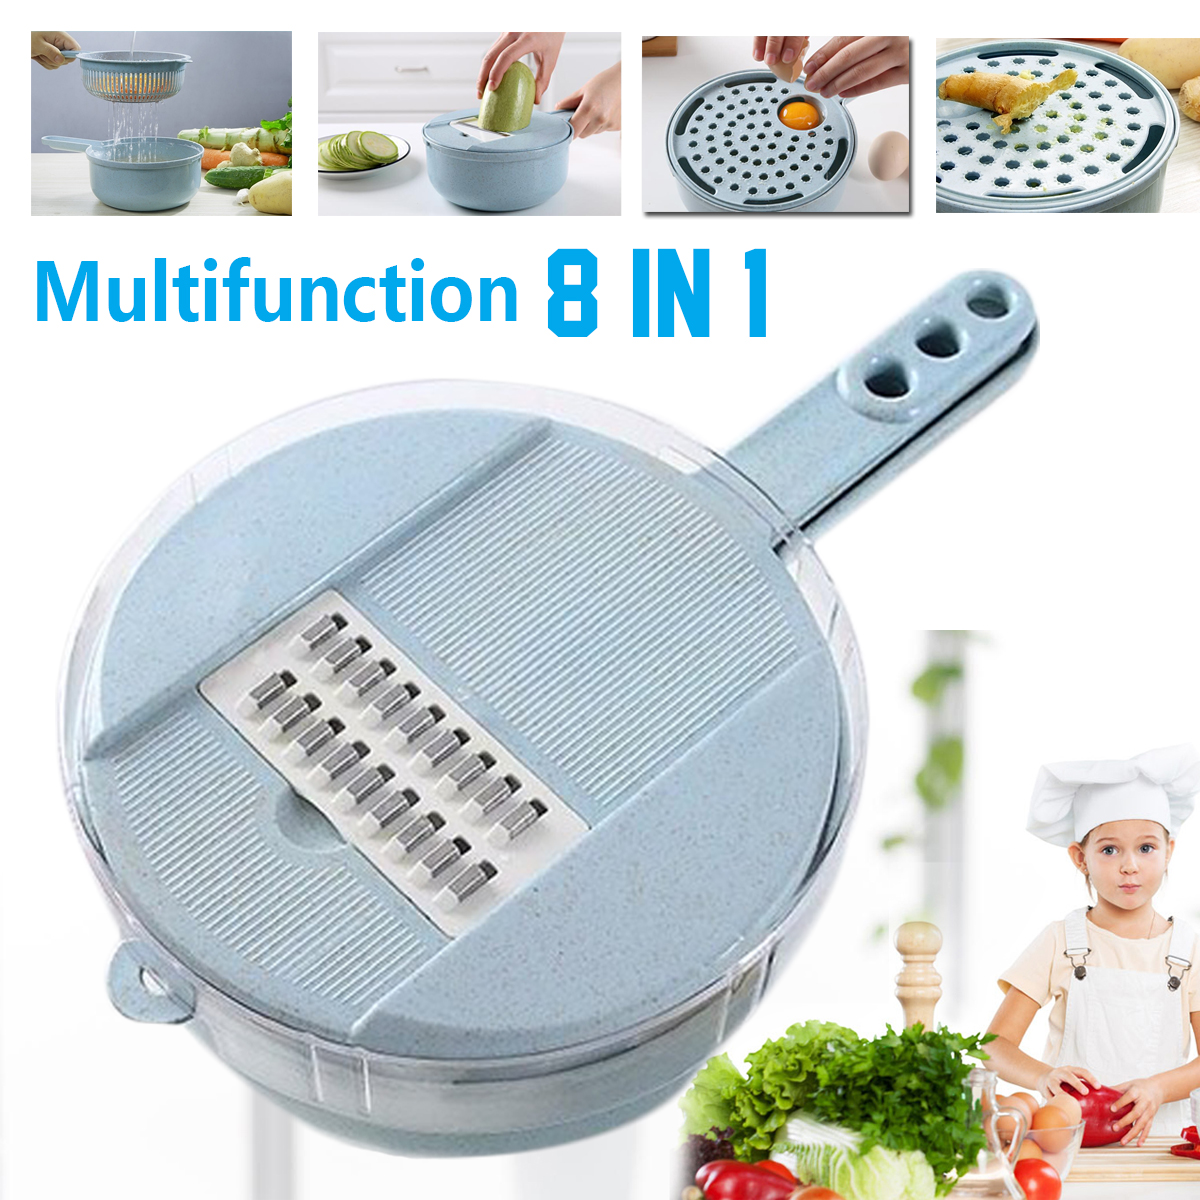 Multifunction 8 In 1 Vegetable Fruit Slicer Chopper Drain basket Cutter Grater Fruit Slicing Tools